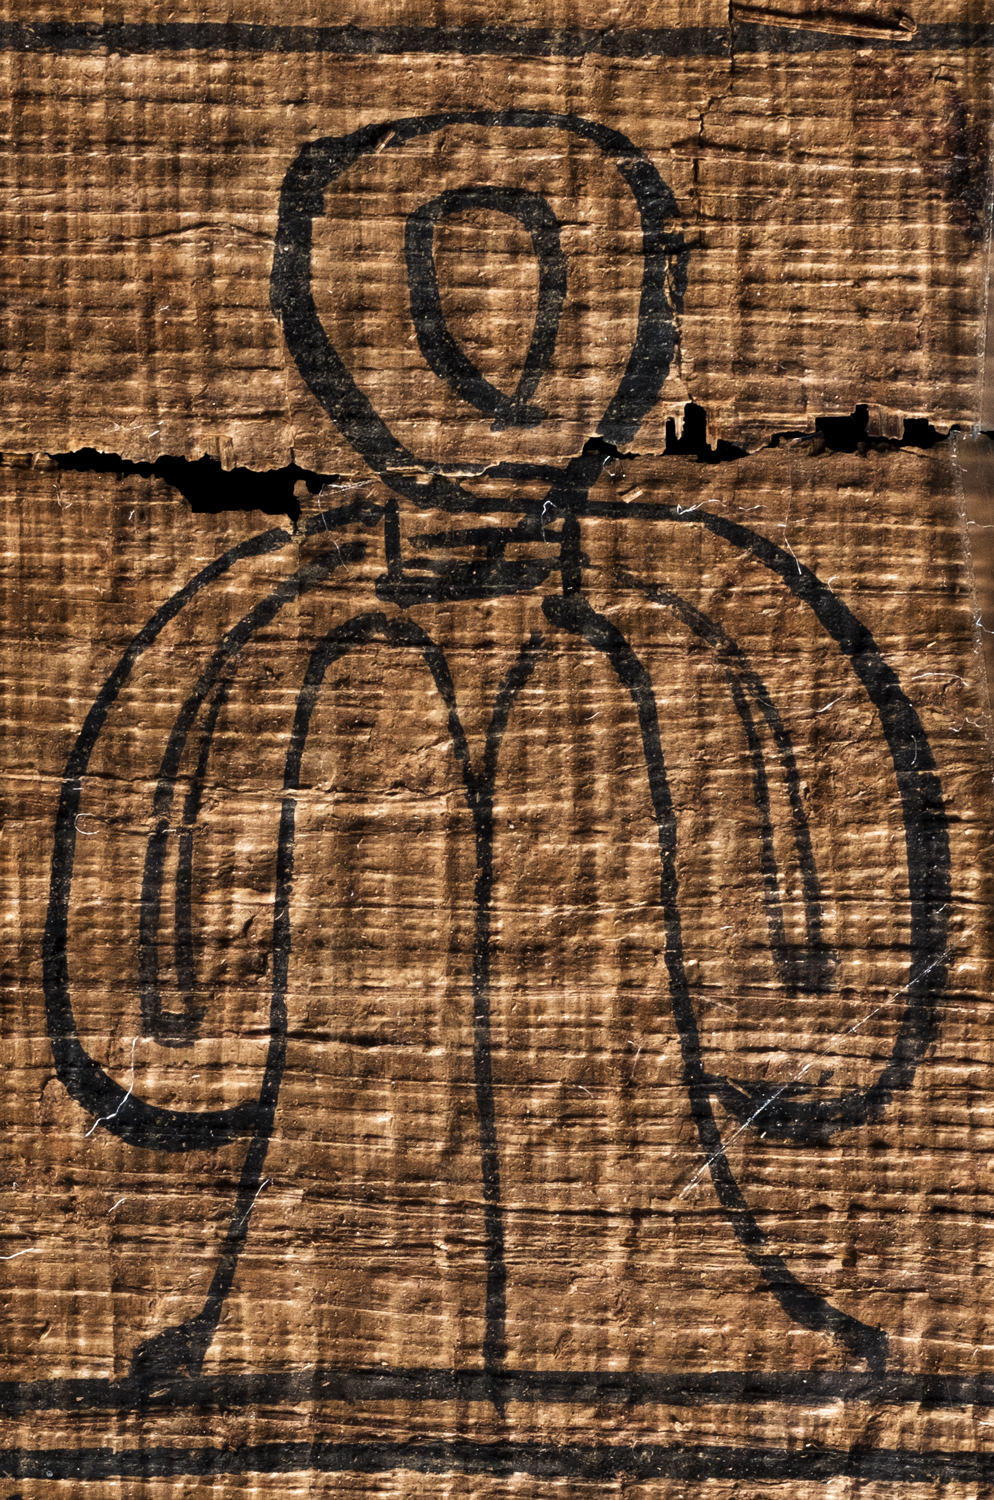 an egyptian tyet (isis knot) on papyrus